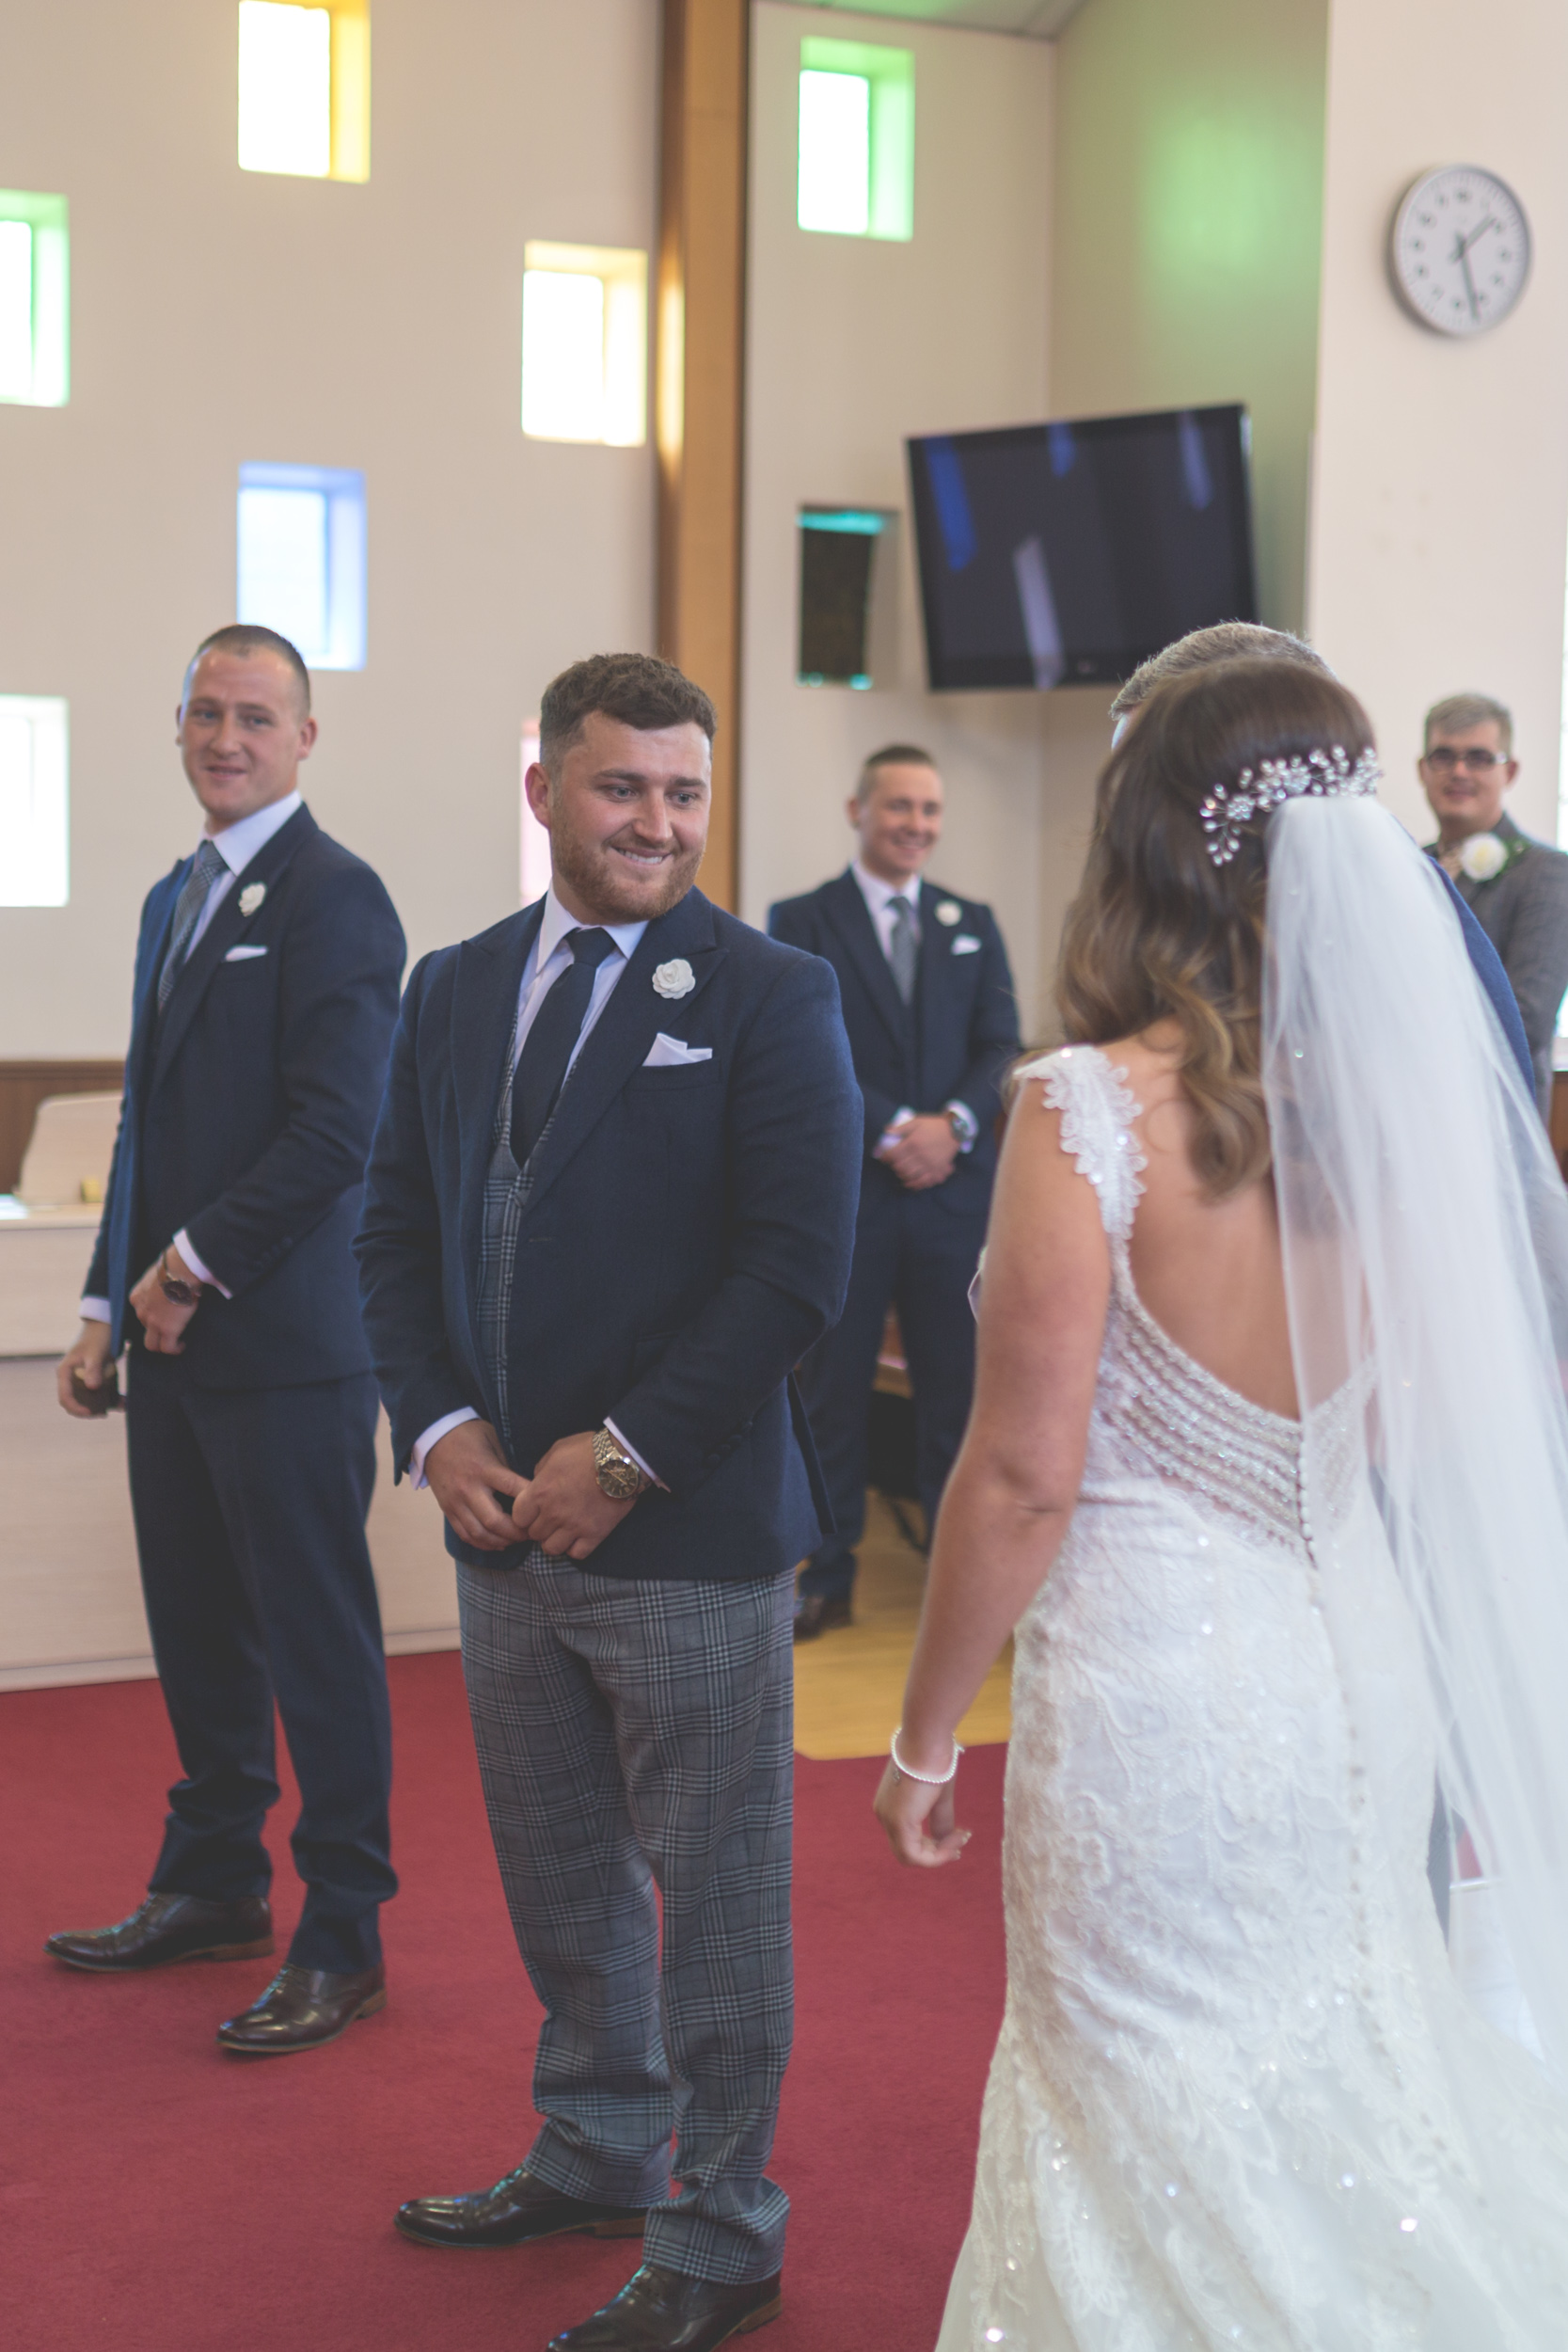 Brian McEwan | Northern Ireland Wedding Photographer | Rebecca & Michael | Ceremony-28.jpg